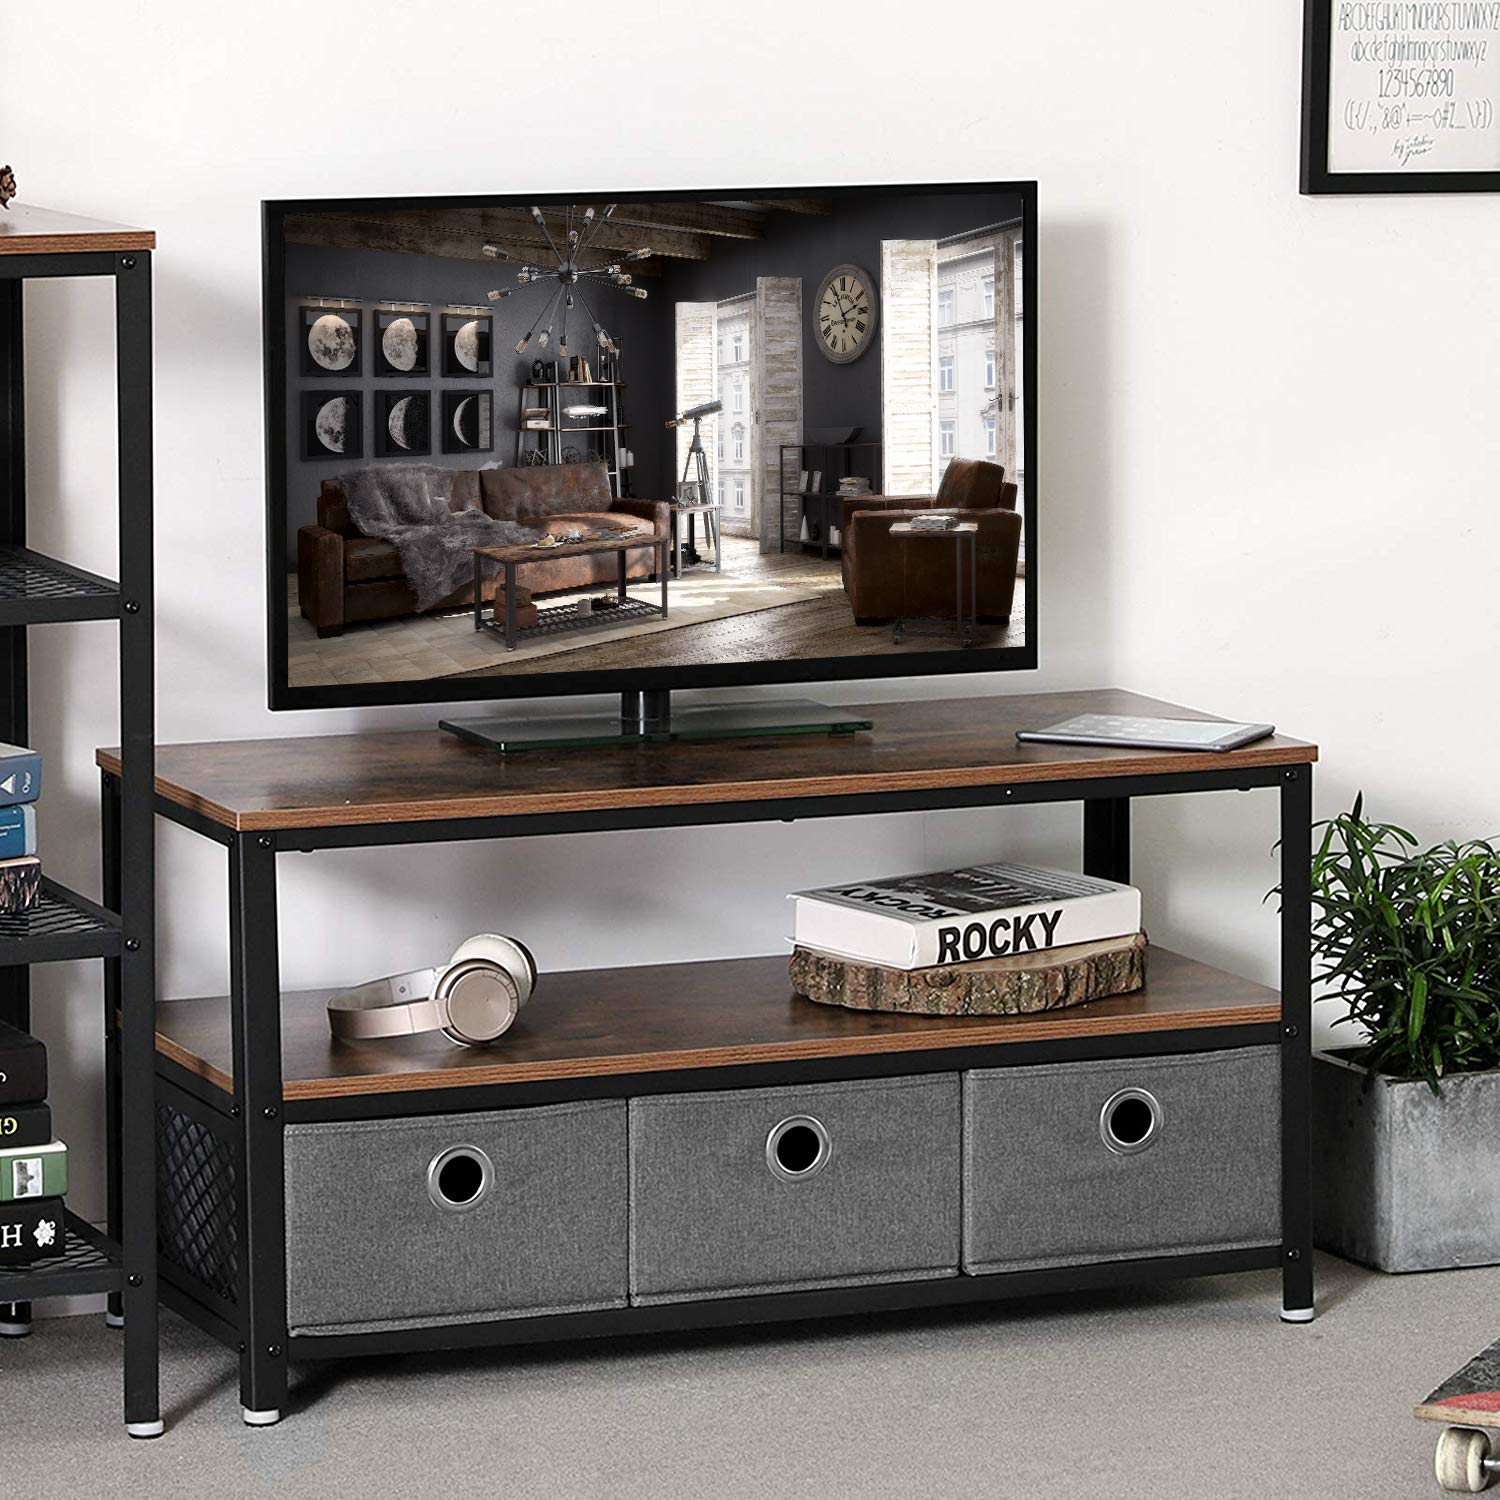 VASAGLE Industrial TV Stand for TVs up to 43 , Storage Console with Metal Shelf, Easy Assembly and Sturdy Design, Adjustable Feet ULTV40BX